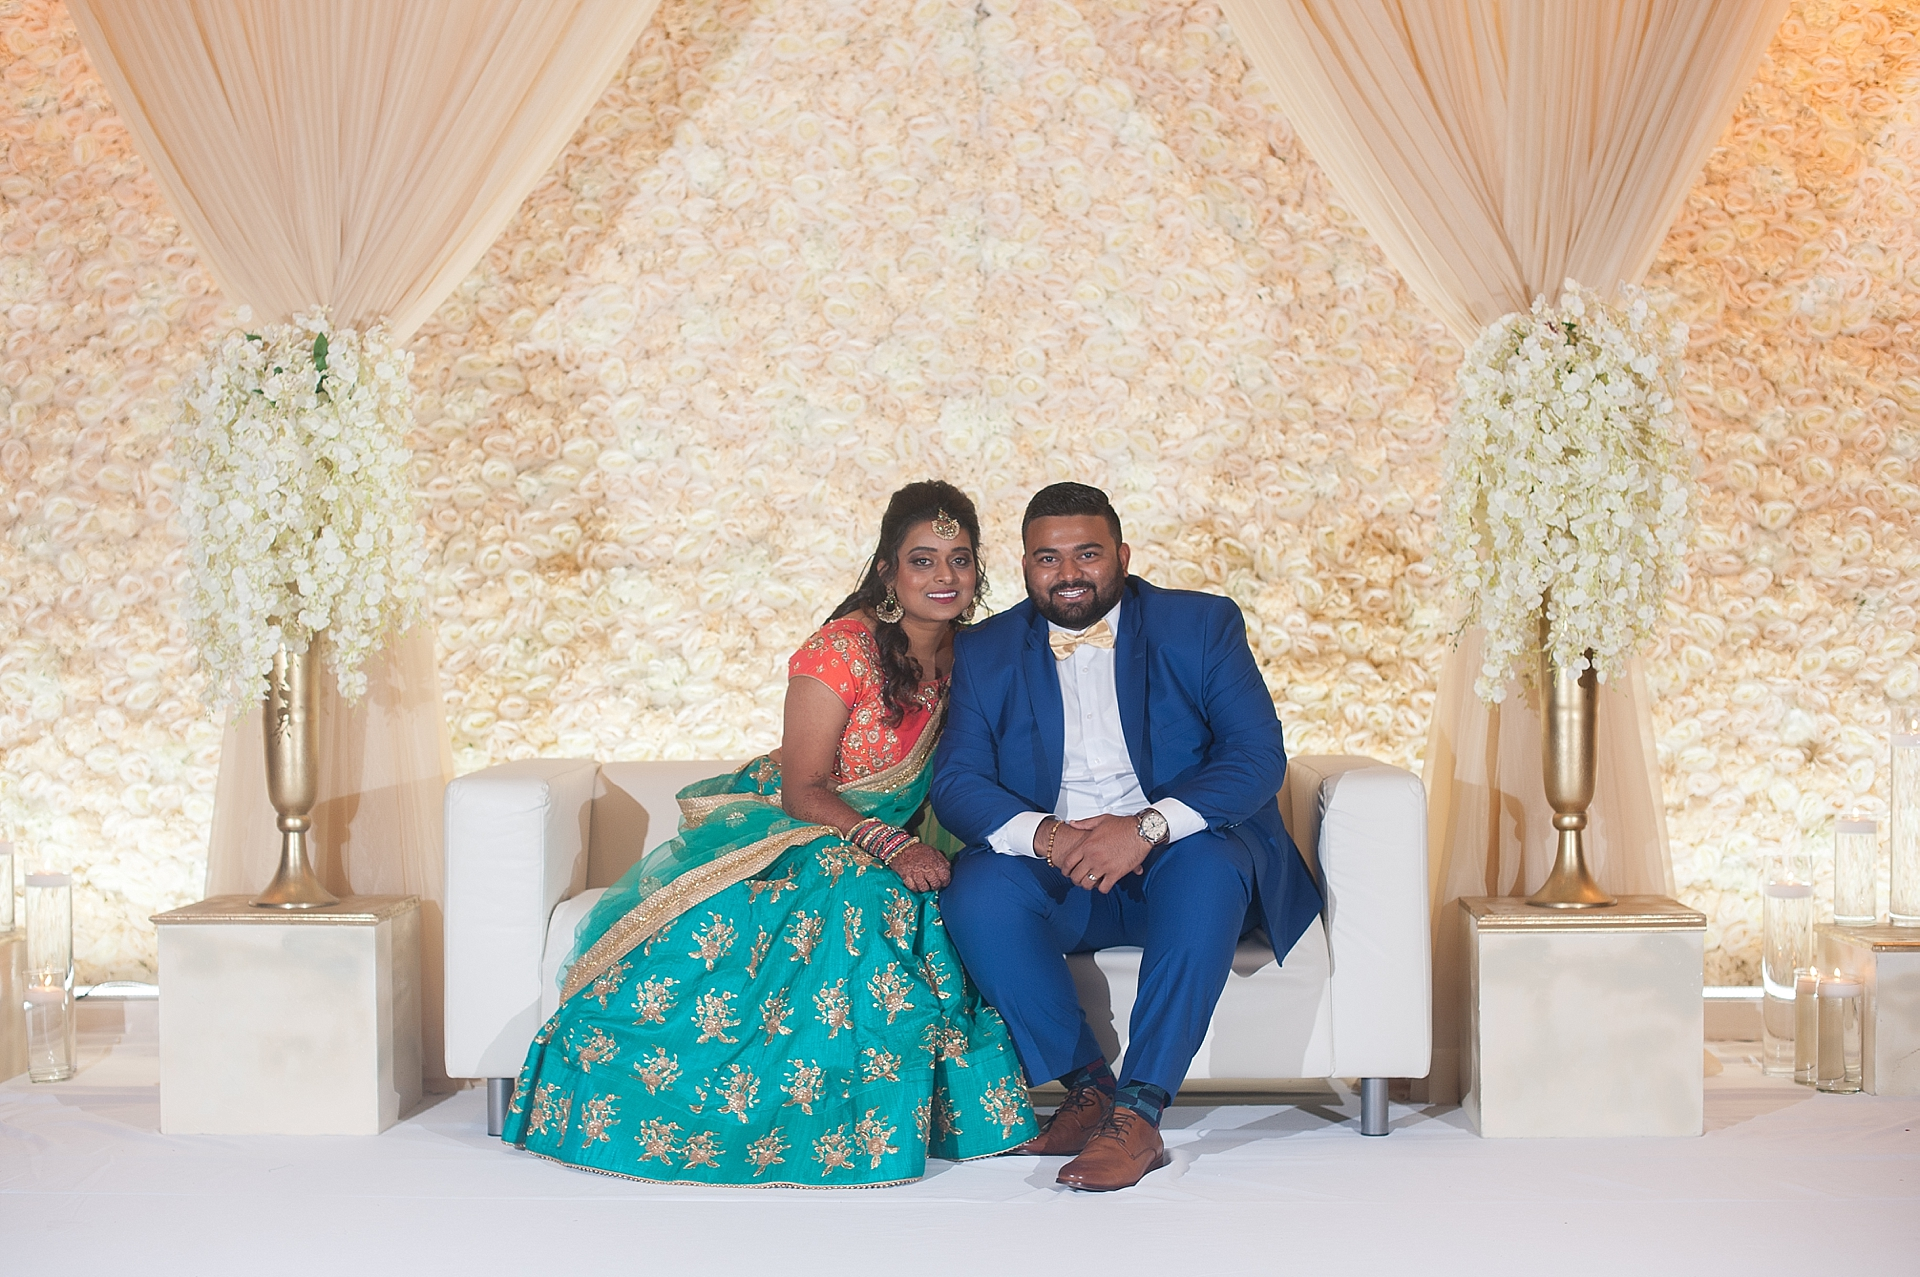 Prexa_Harry_Columbus_Crown_Plaza_Indian_Wedding0088.jpg